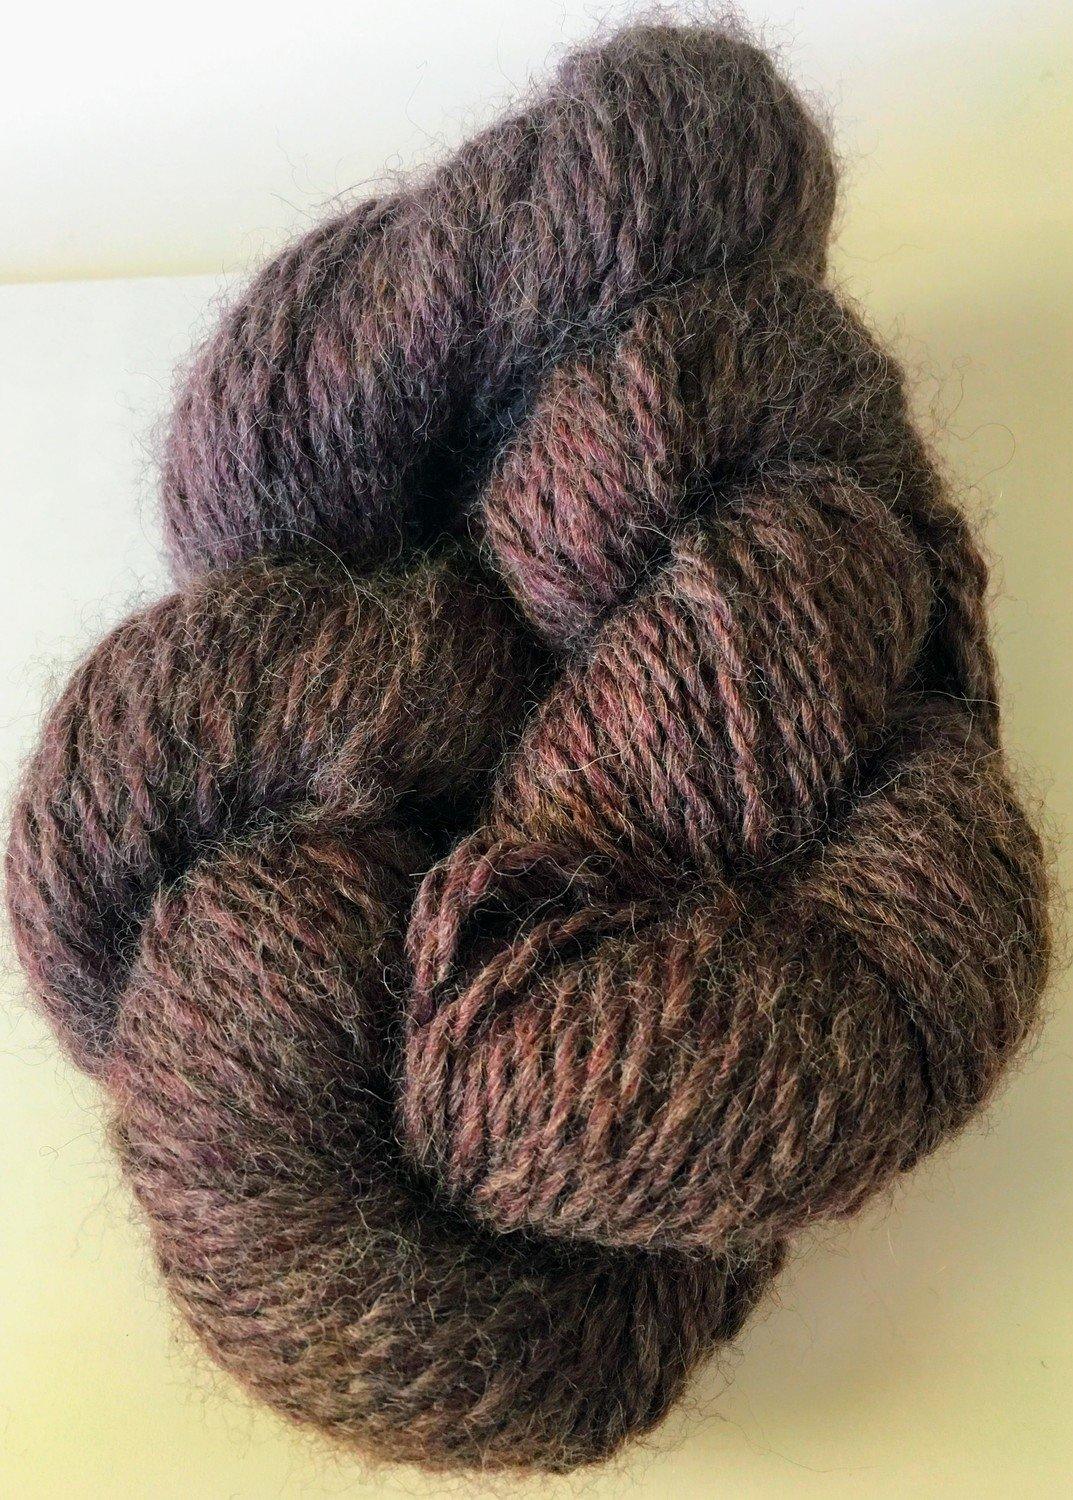 Breezy Hill Cottage-Milled, Hand-Dyed Yarn - Dusty Plum